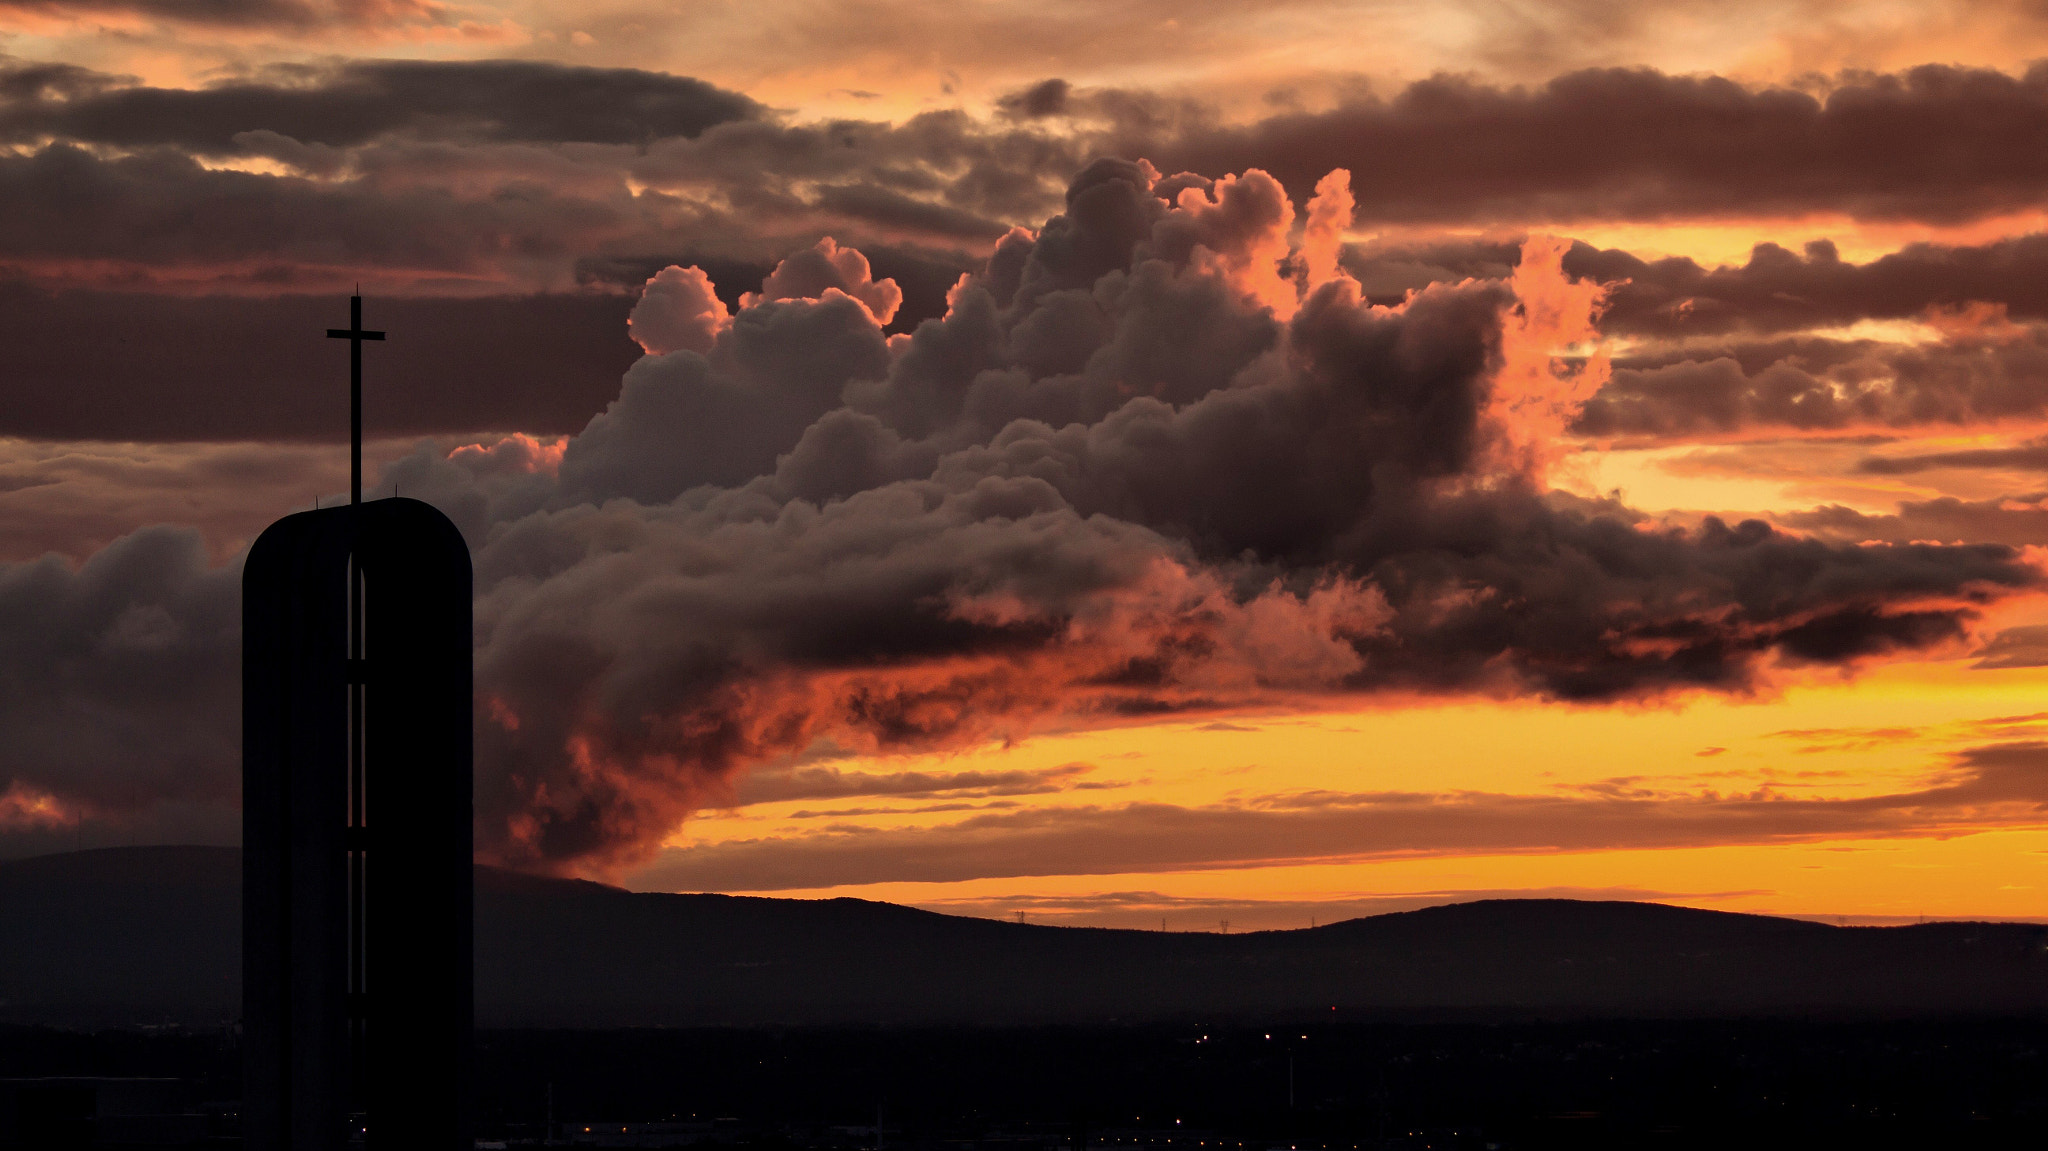 Photograph Sunset by Jag Canape on 500px